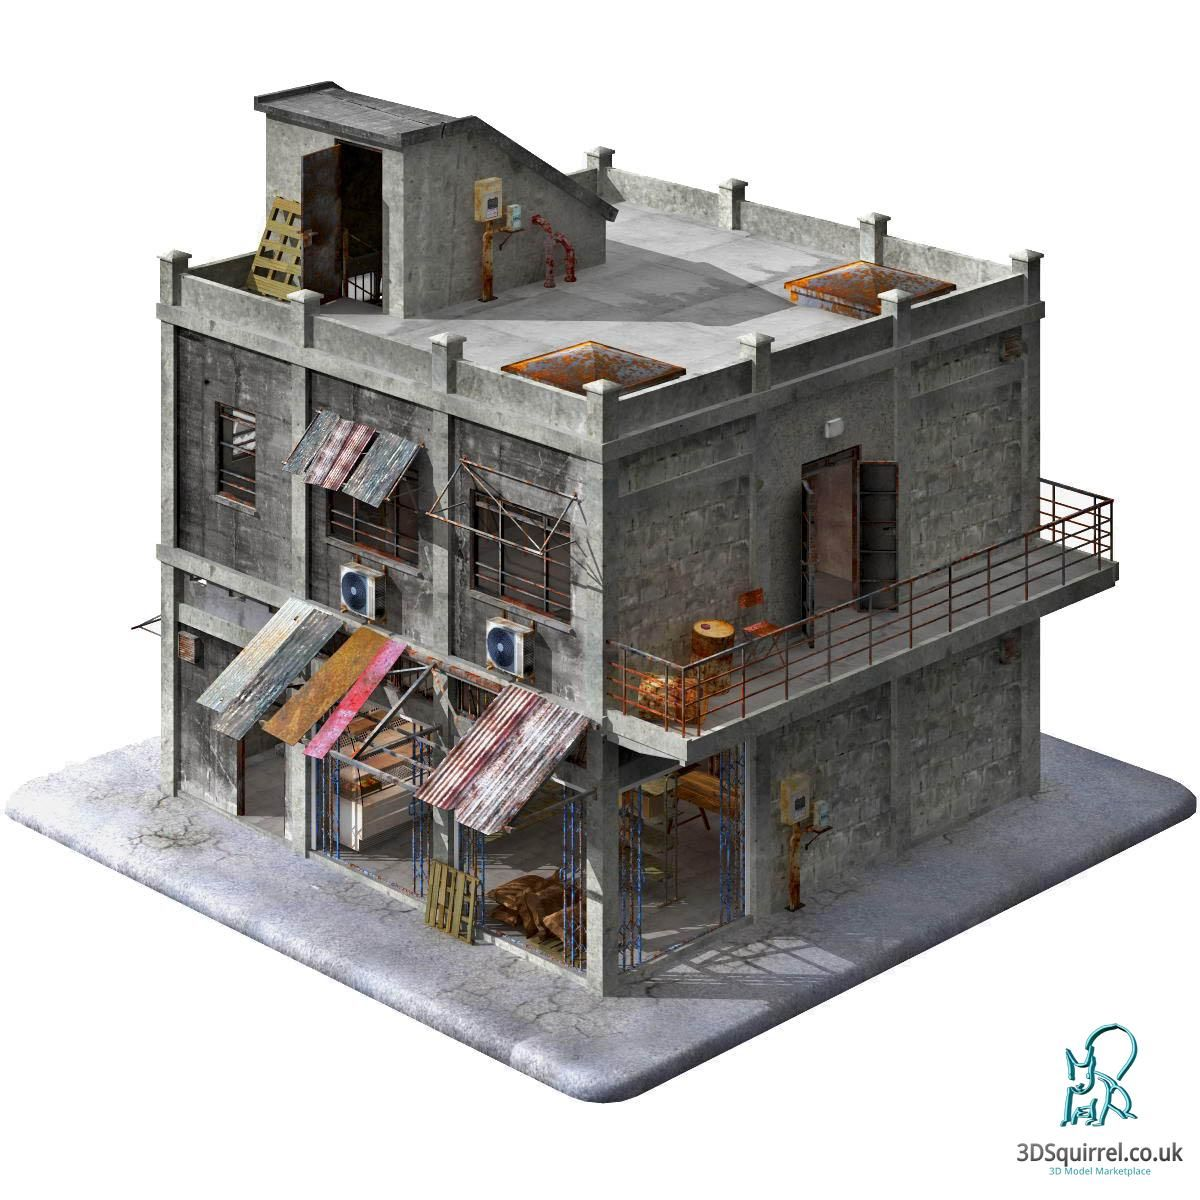 A 3D Model of a building designed inside and out in the